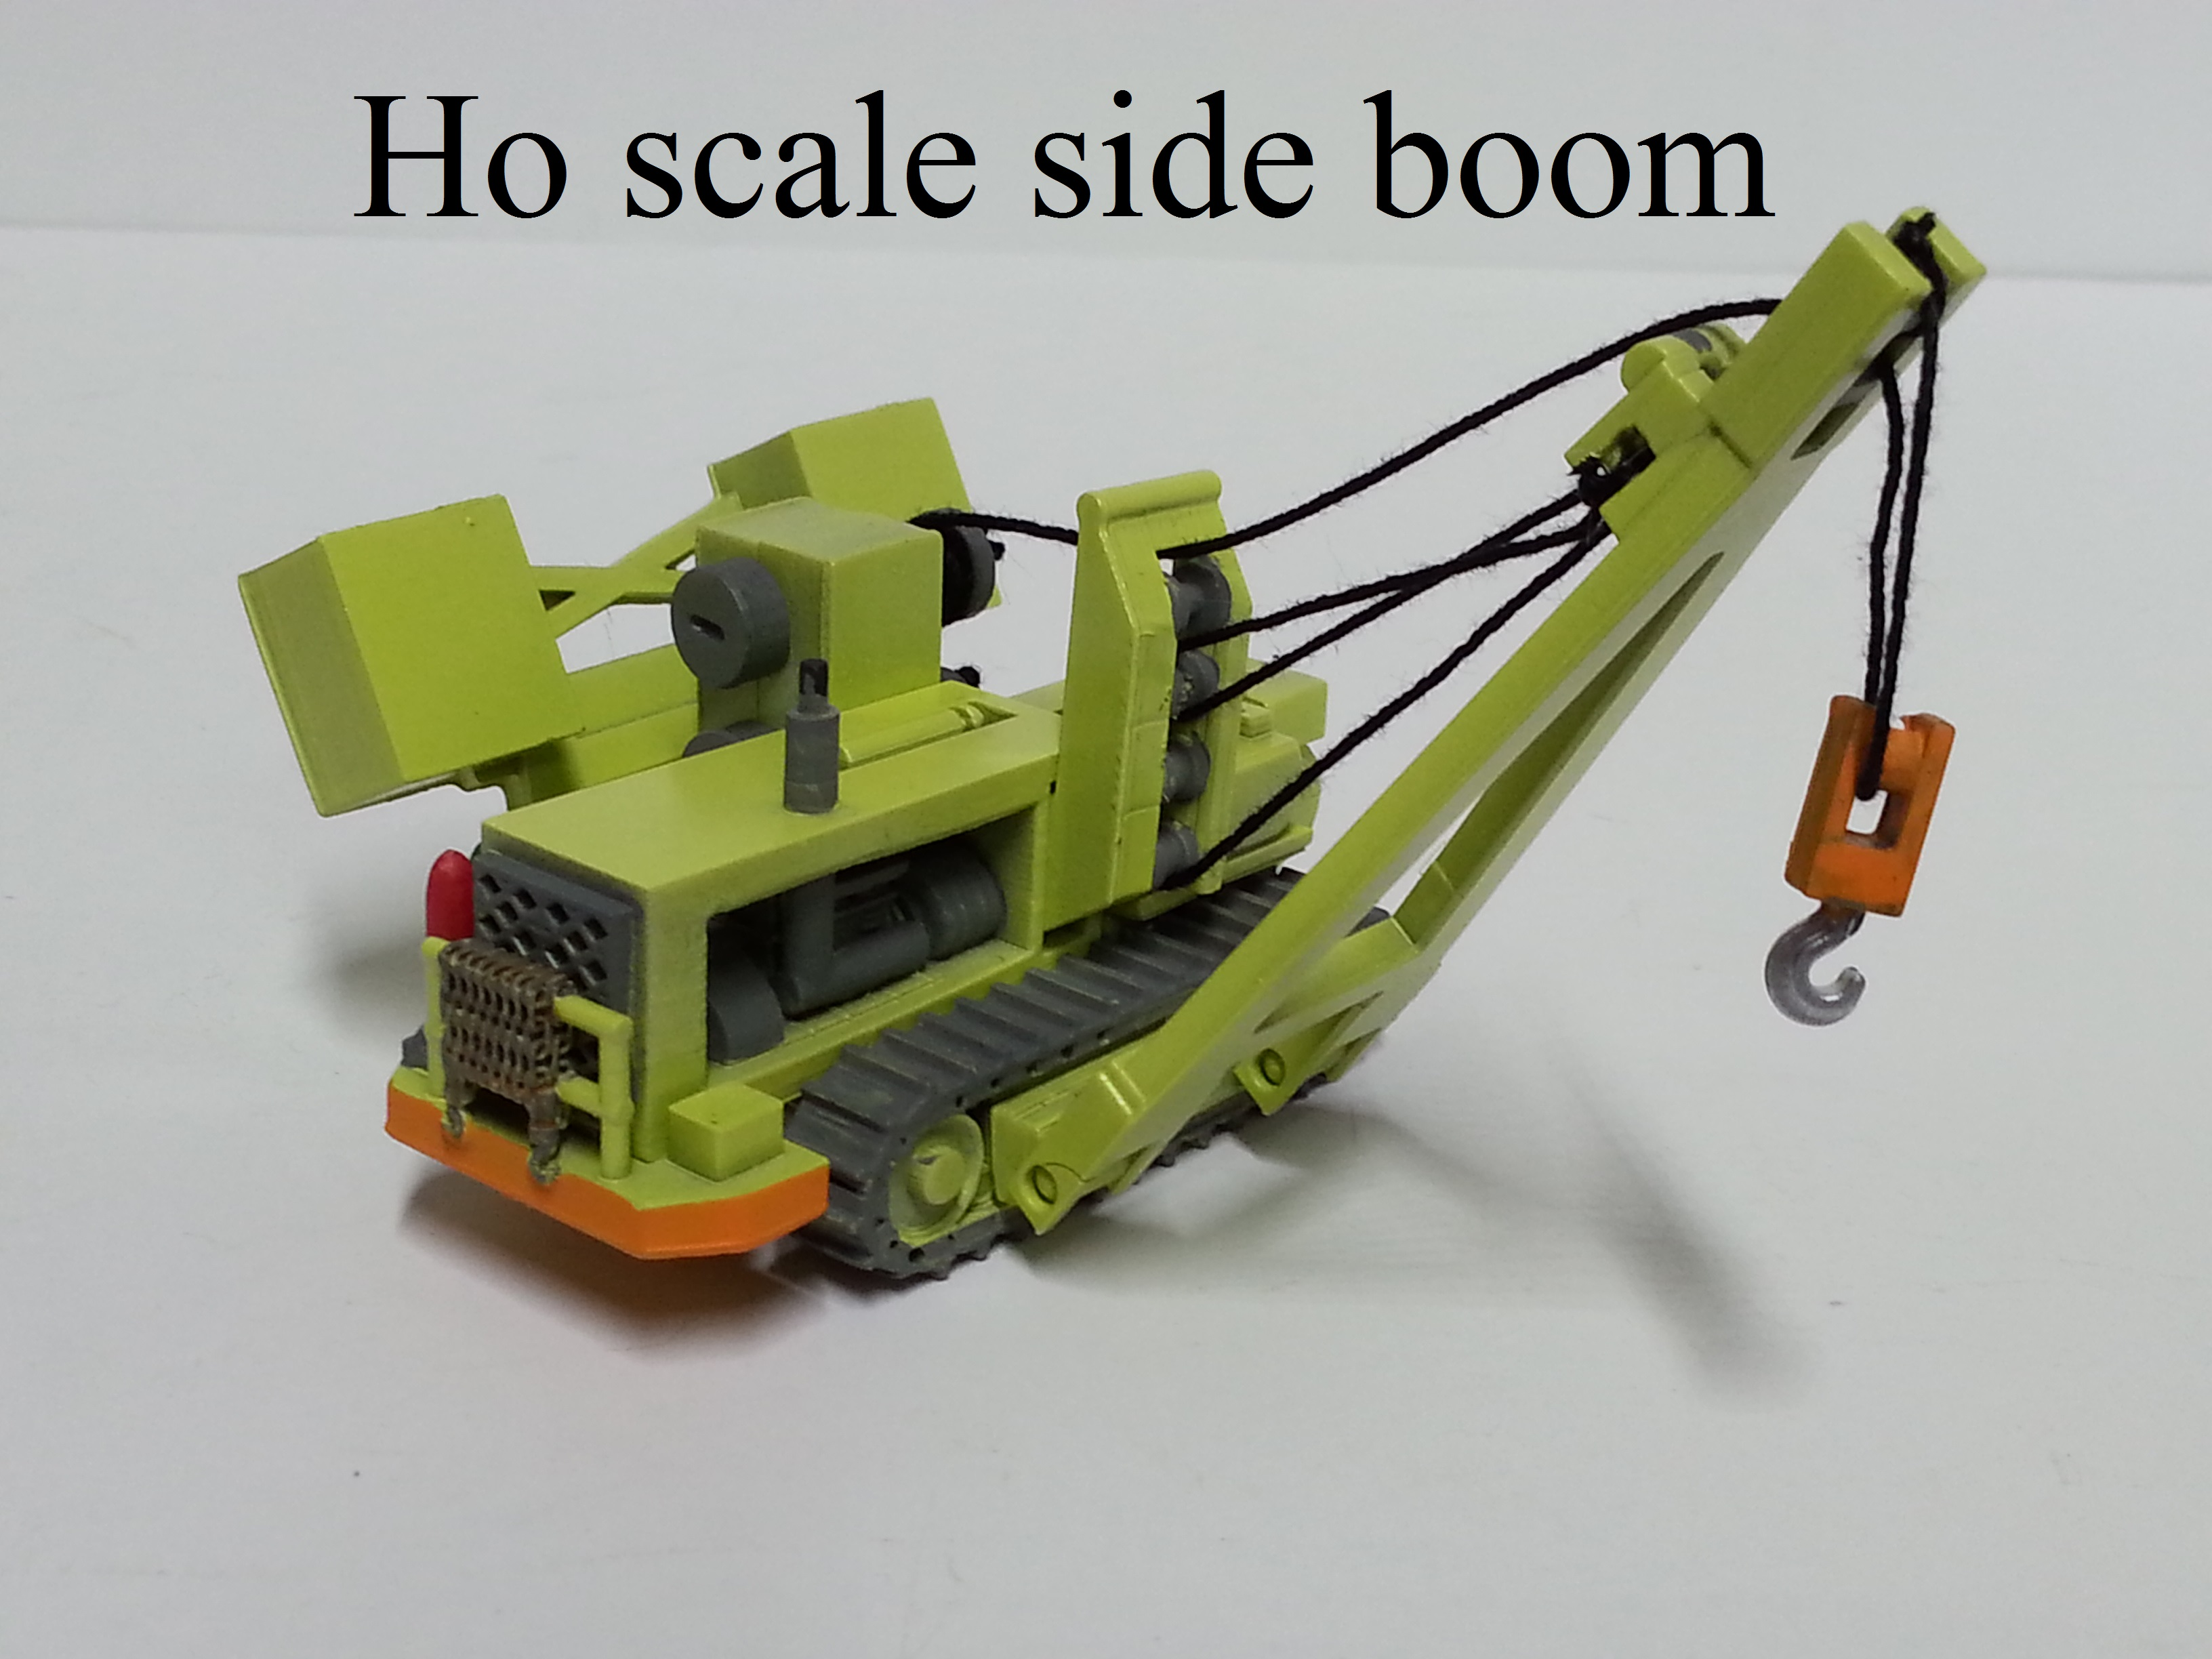 Ho scale side boom